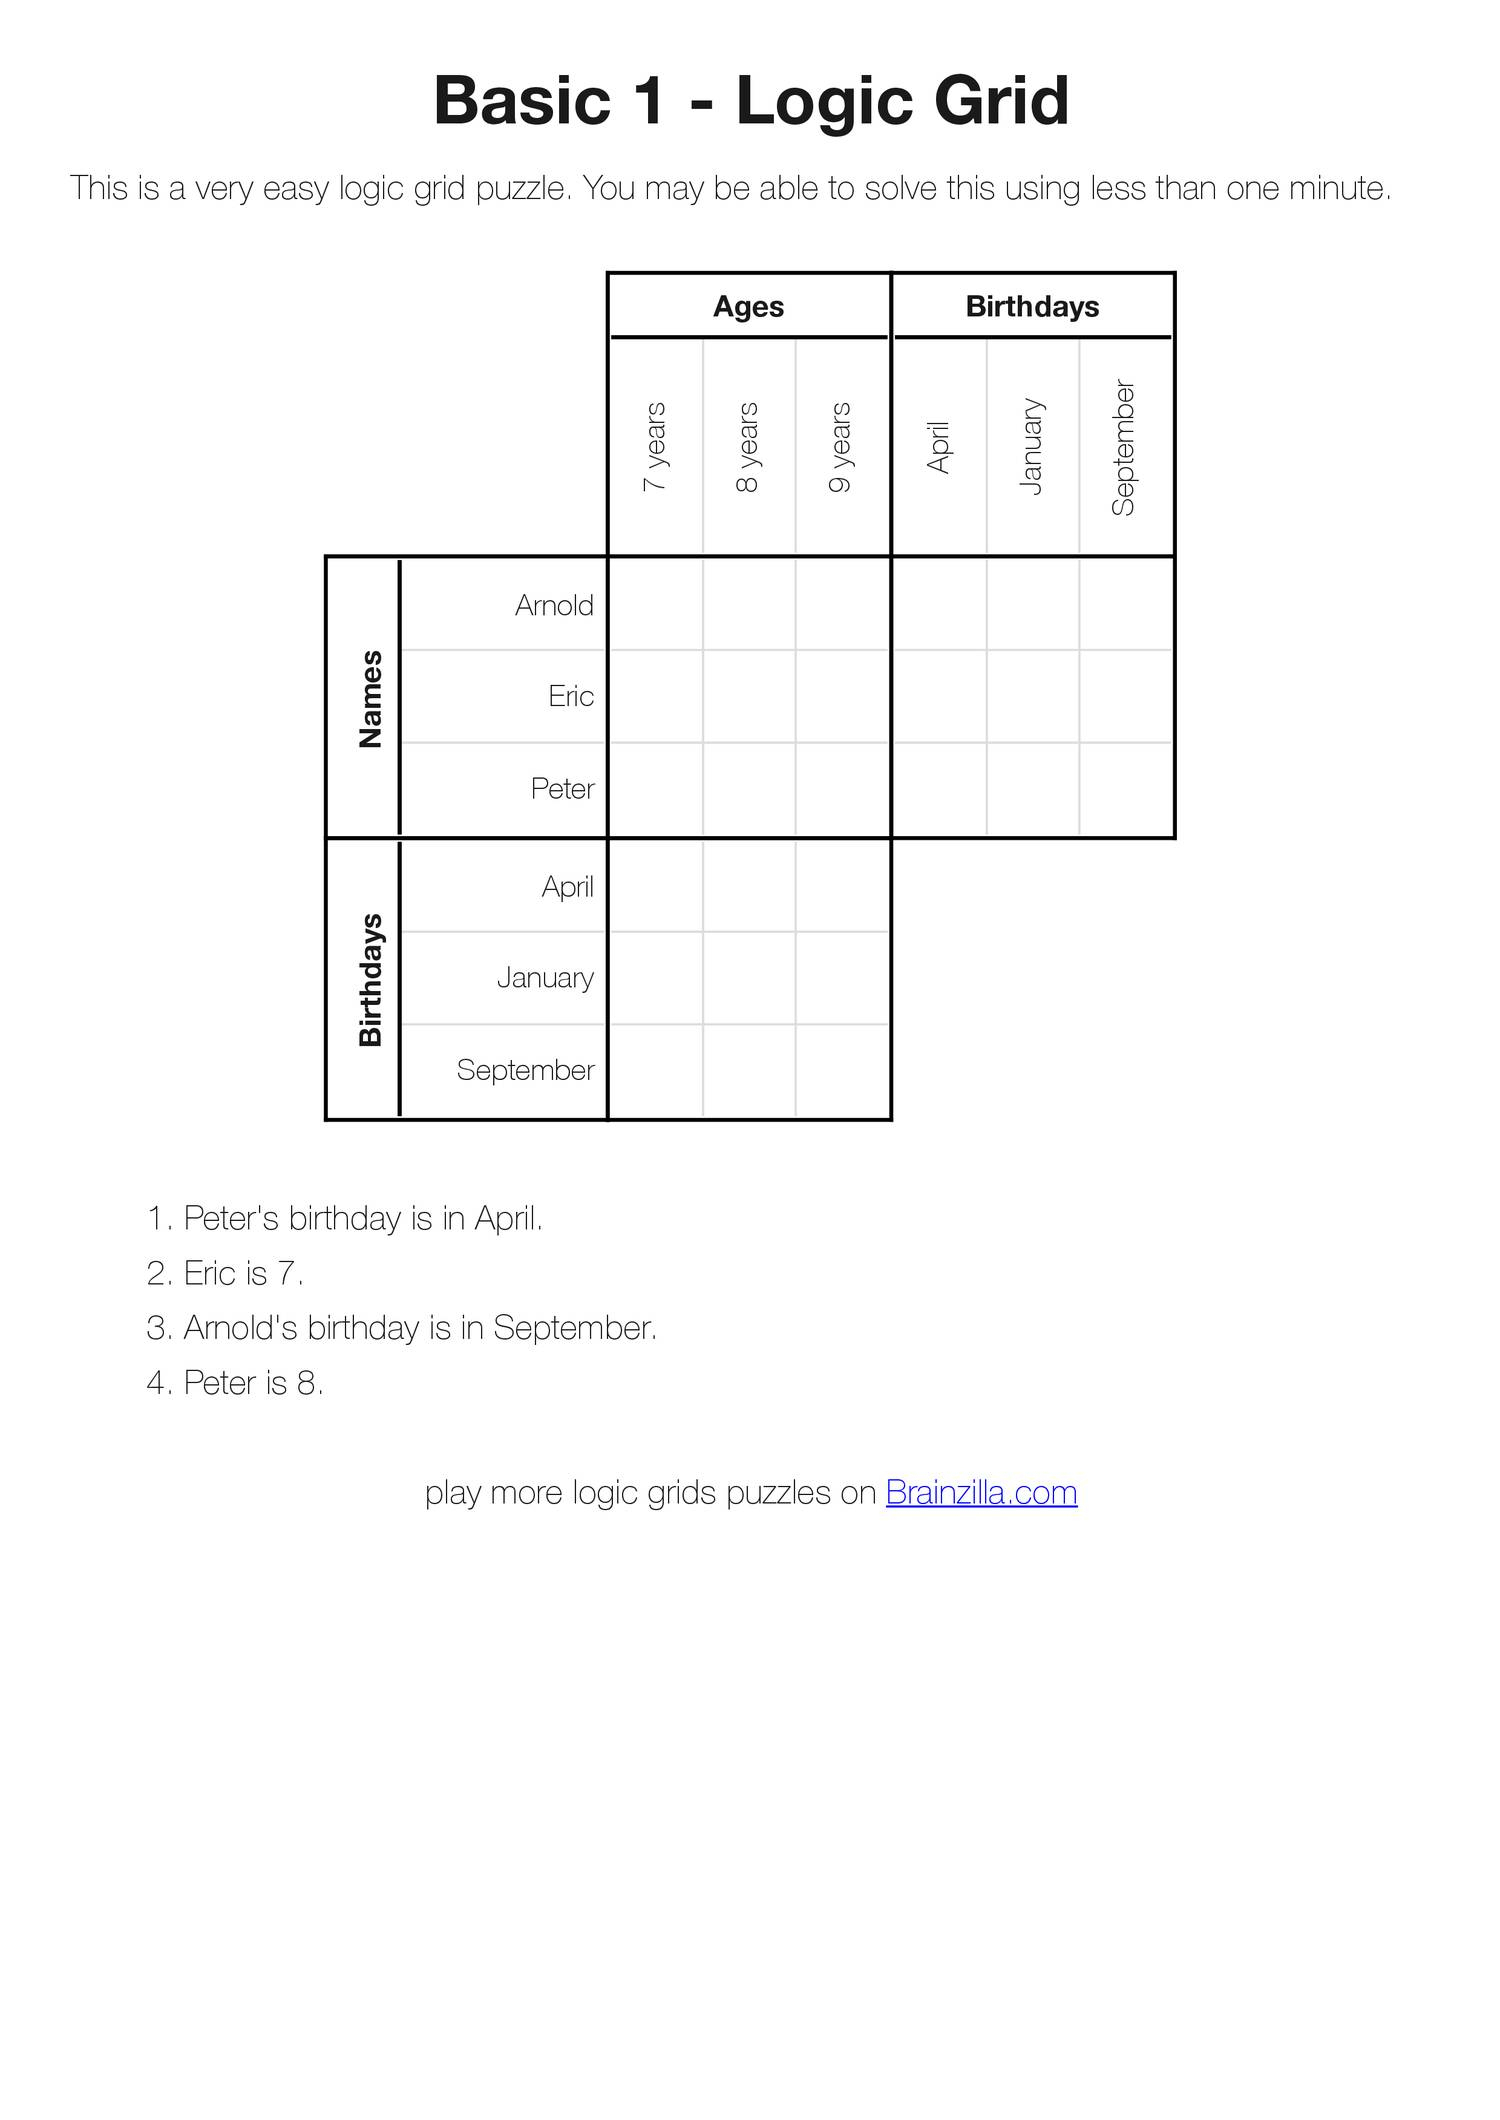 Printable Logic Grid Puzzles (Brainzilla).pdf | Docdroid - Printable Logic Puzzle Grid